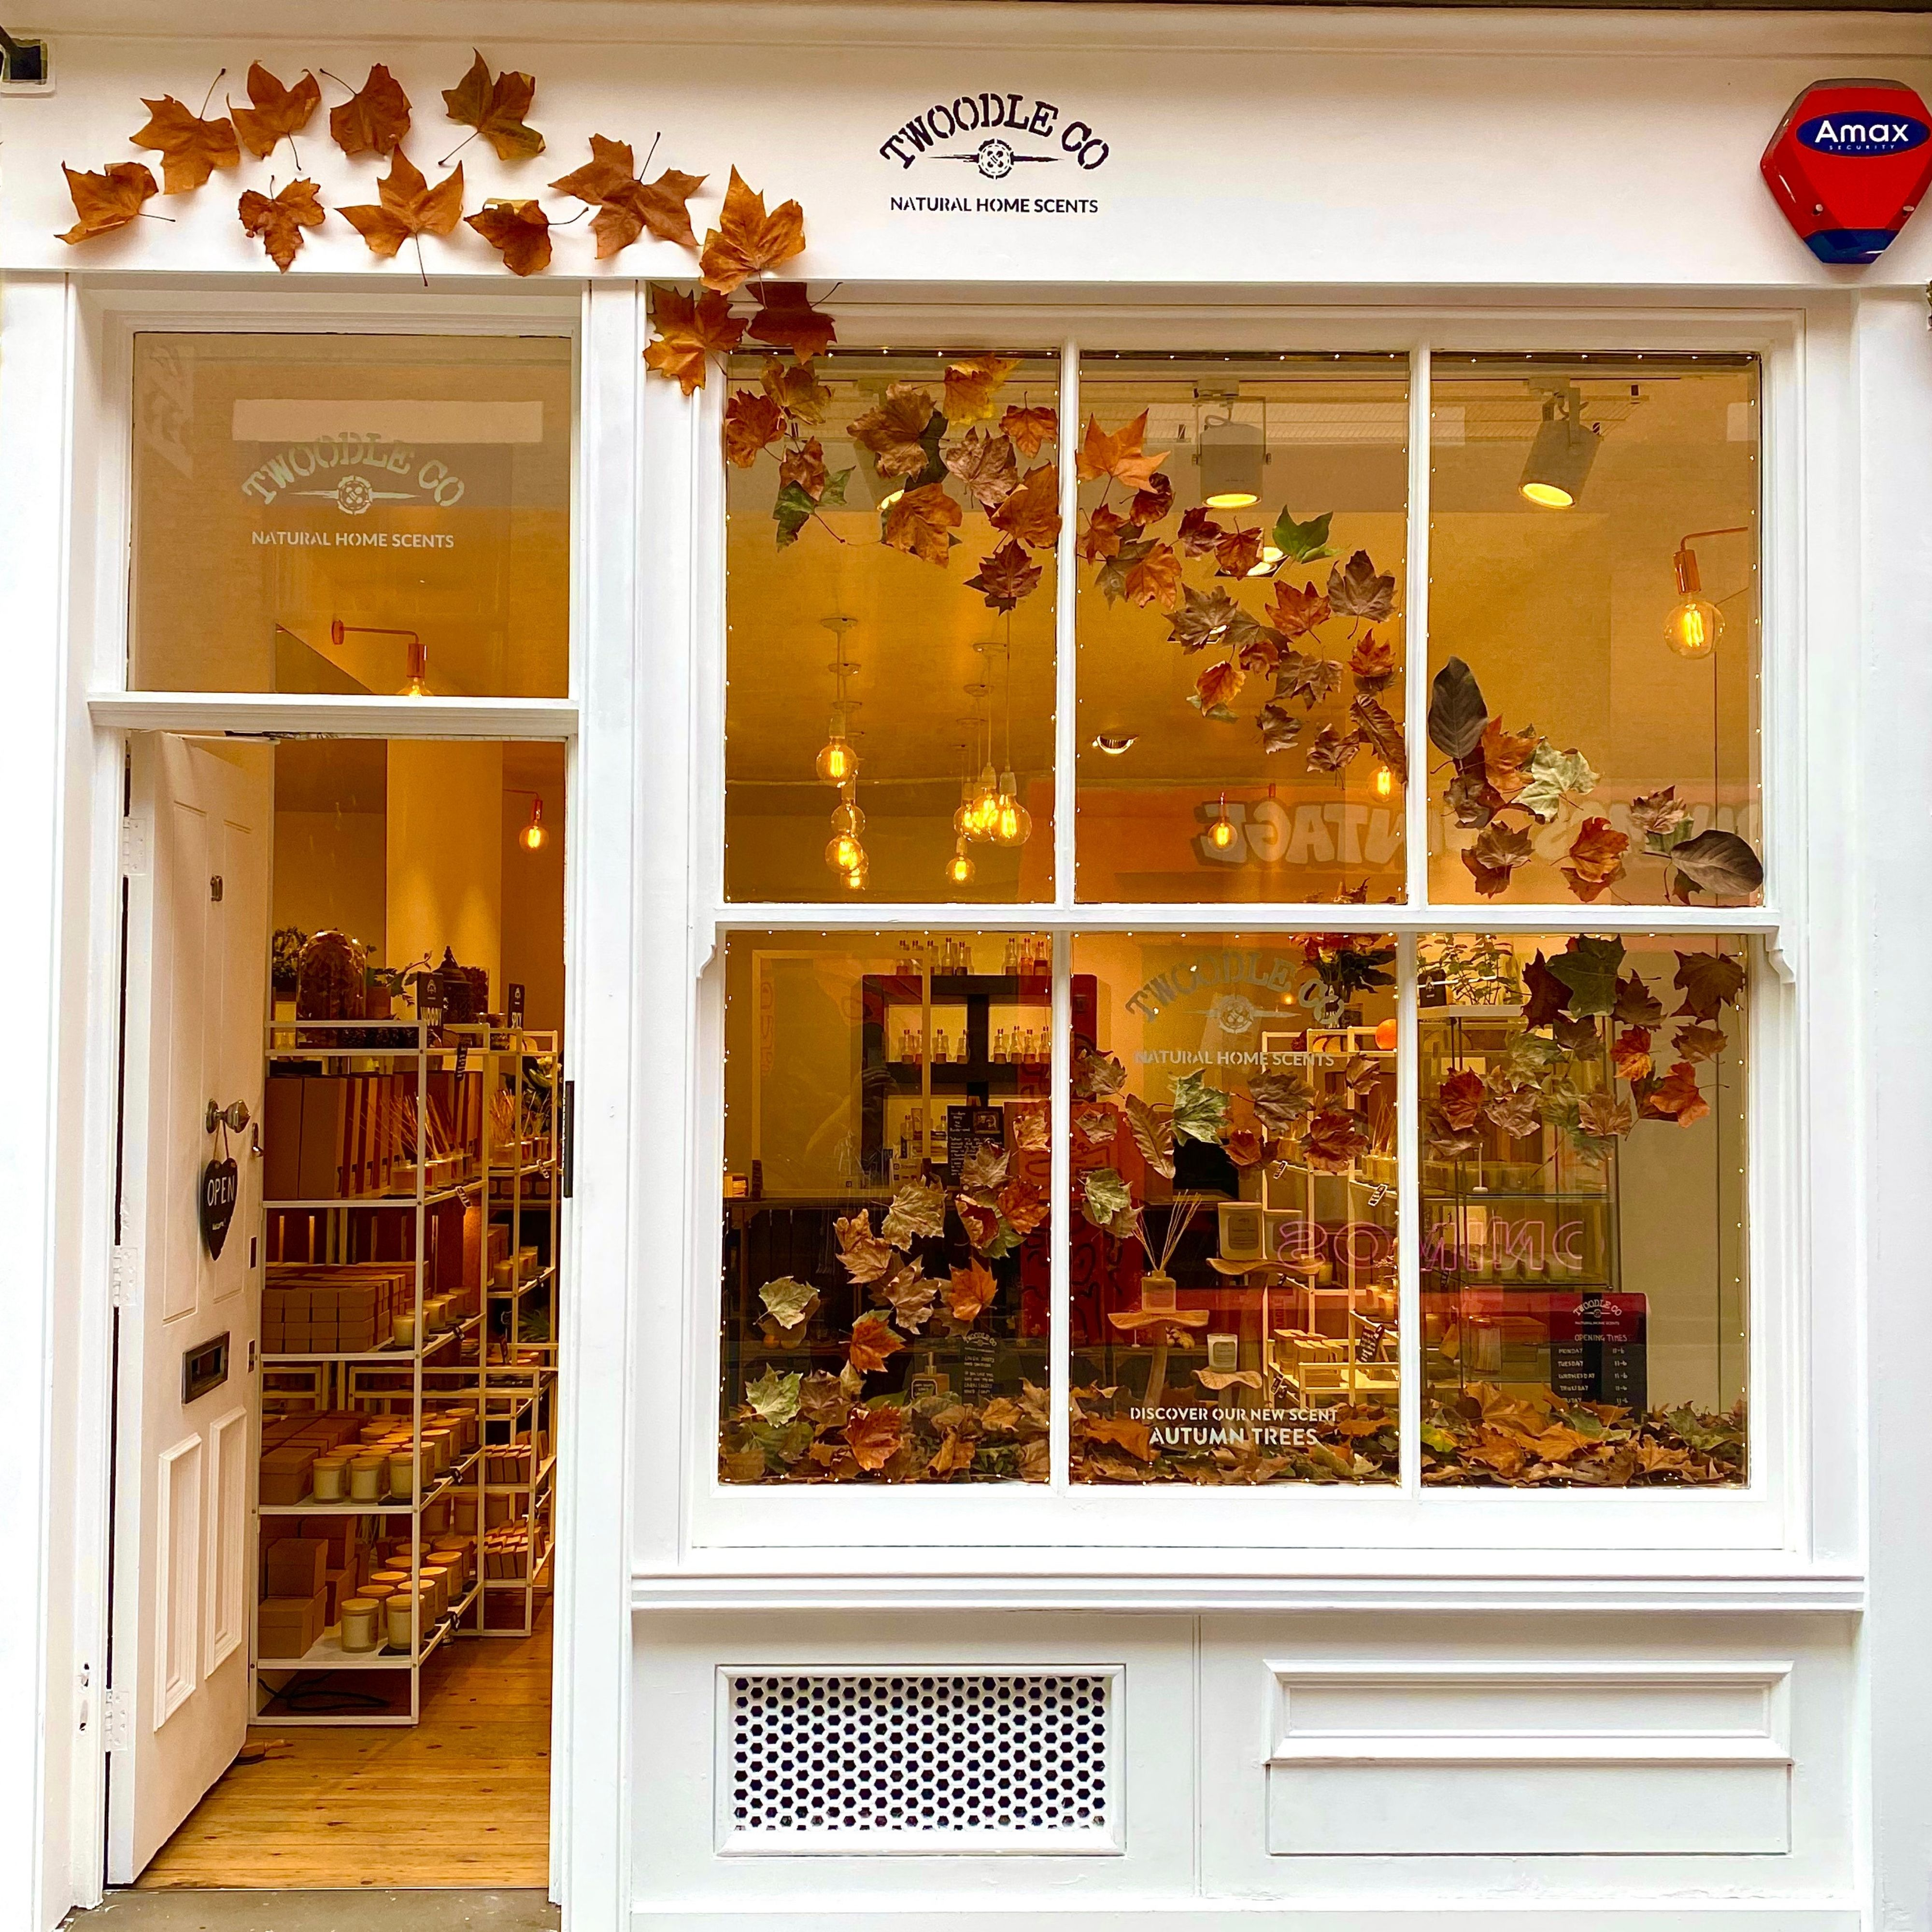 Autumn window display by Twoodle Co Natural Home Scents 10 Cheshire Street London E2 6EH